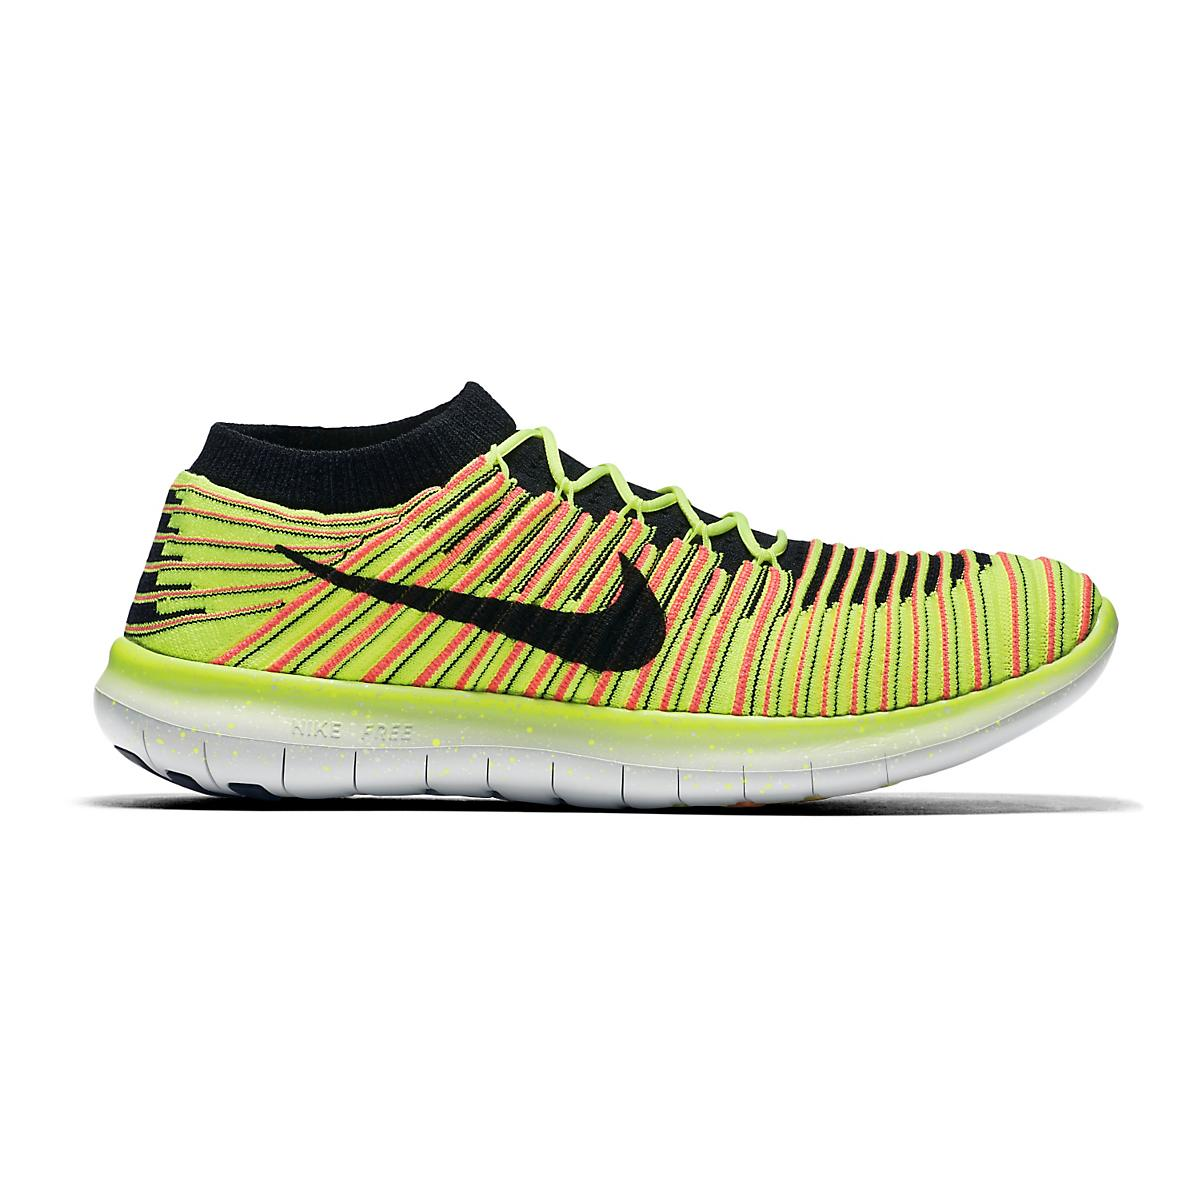 reputable site a6e23 5b579 Mens Nike Free RN Motion Flyknit Running Shoe at Road Runner Sports